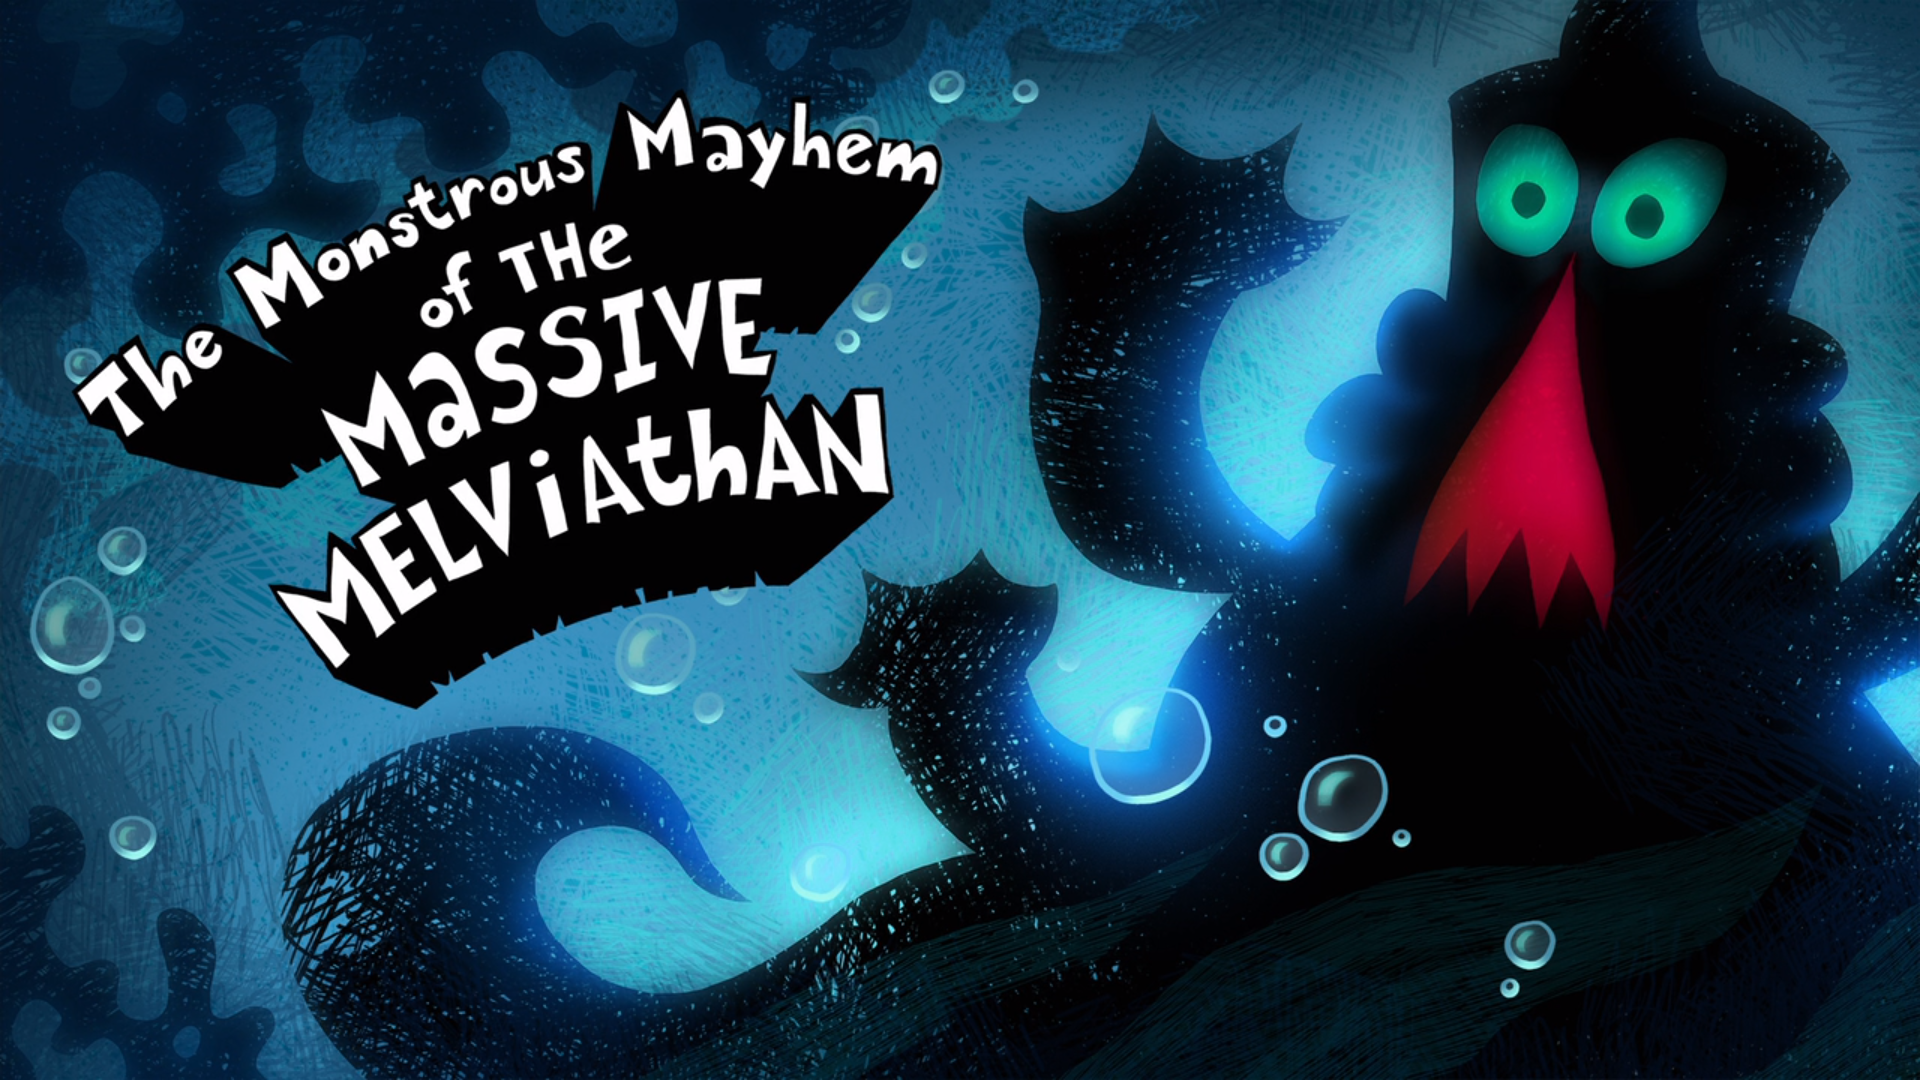 The Monstrous Mayhem of the Massive Melviathan